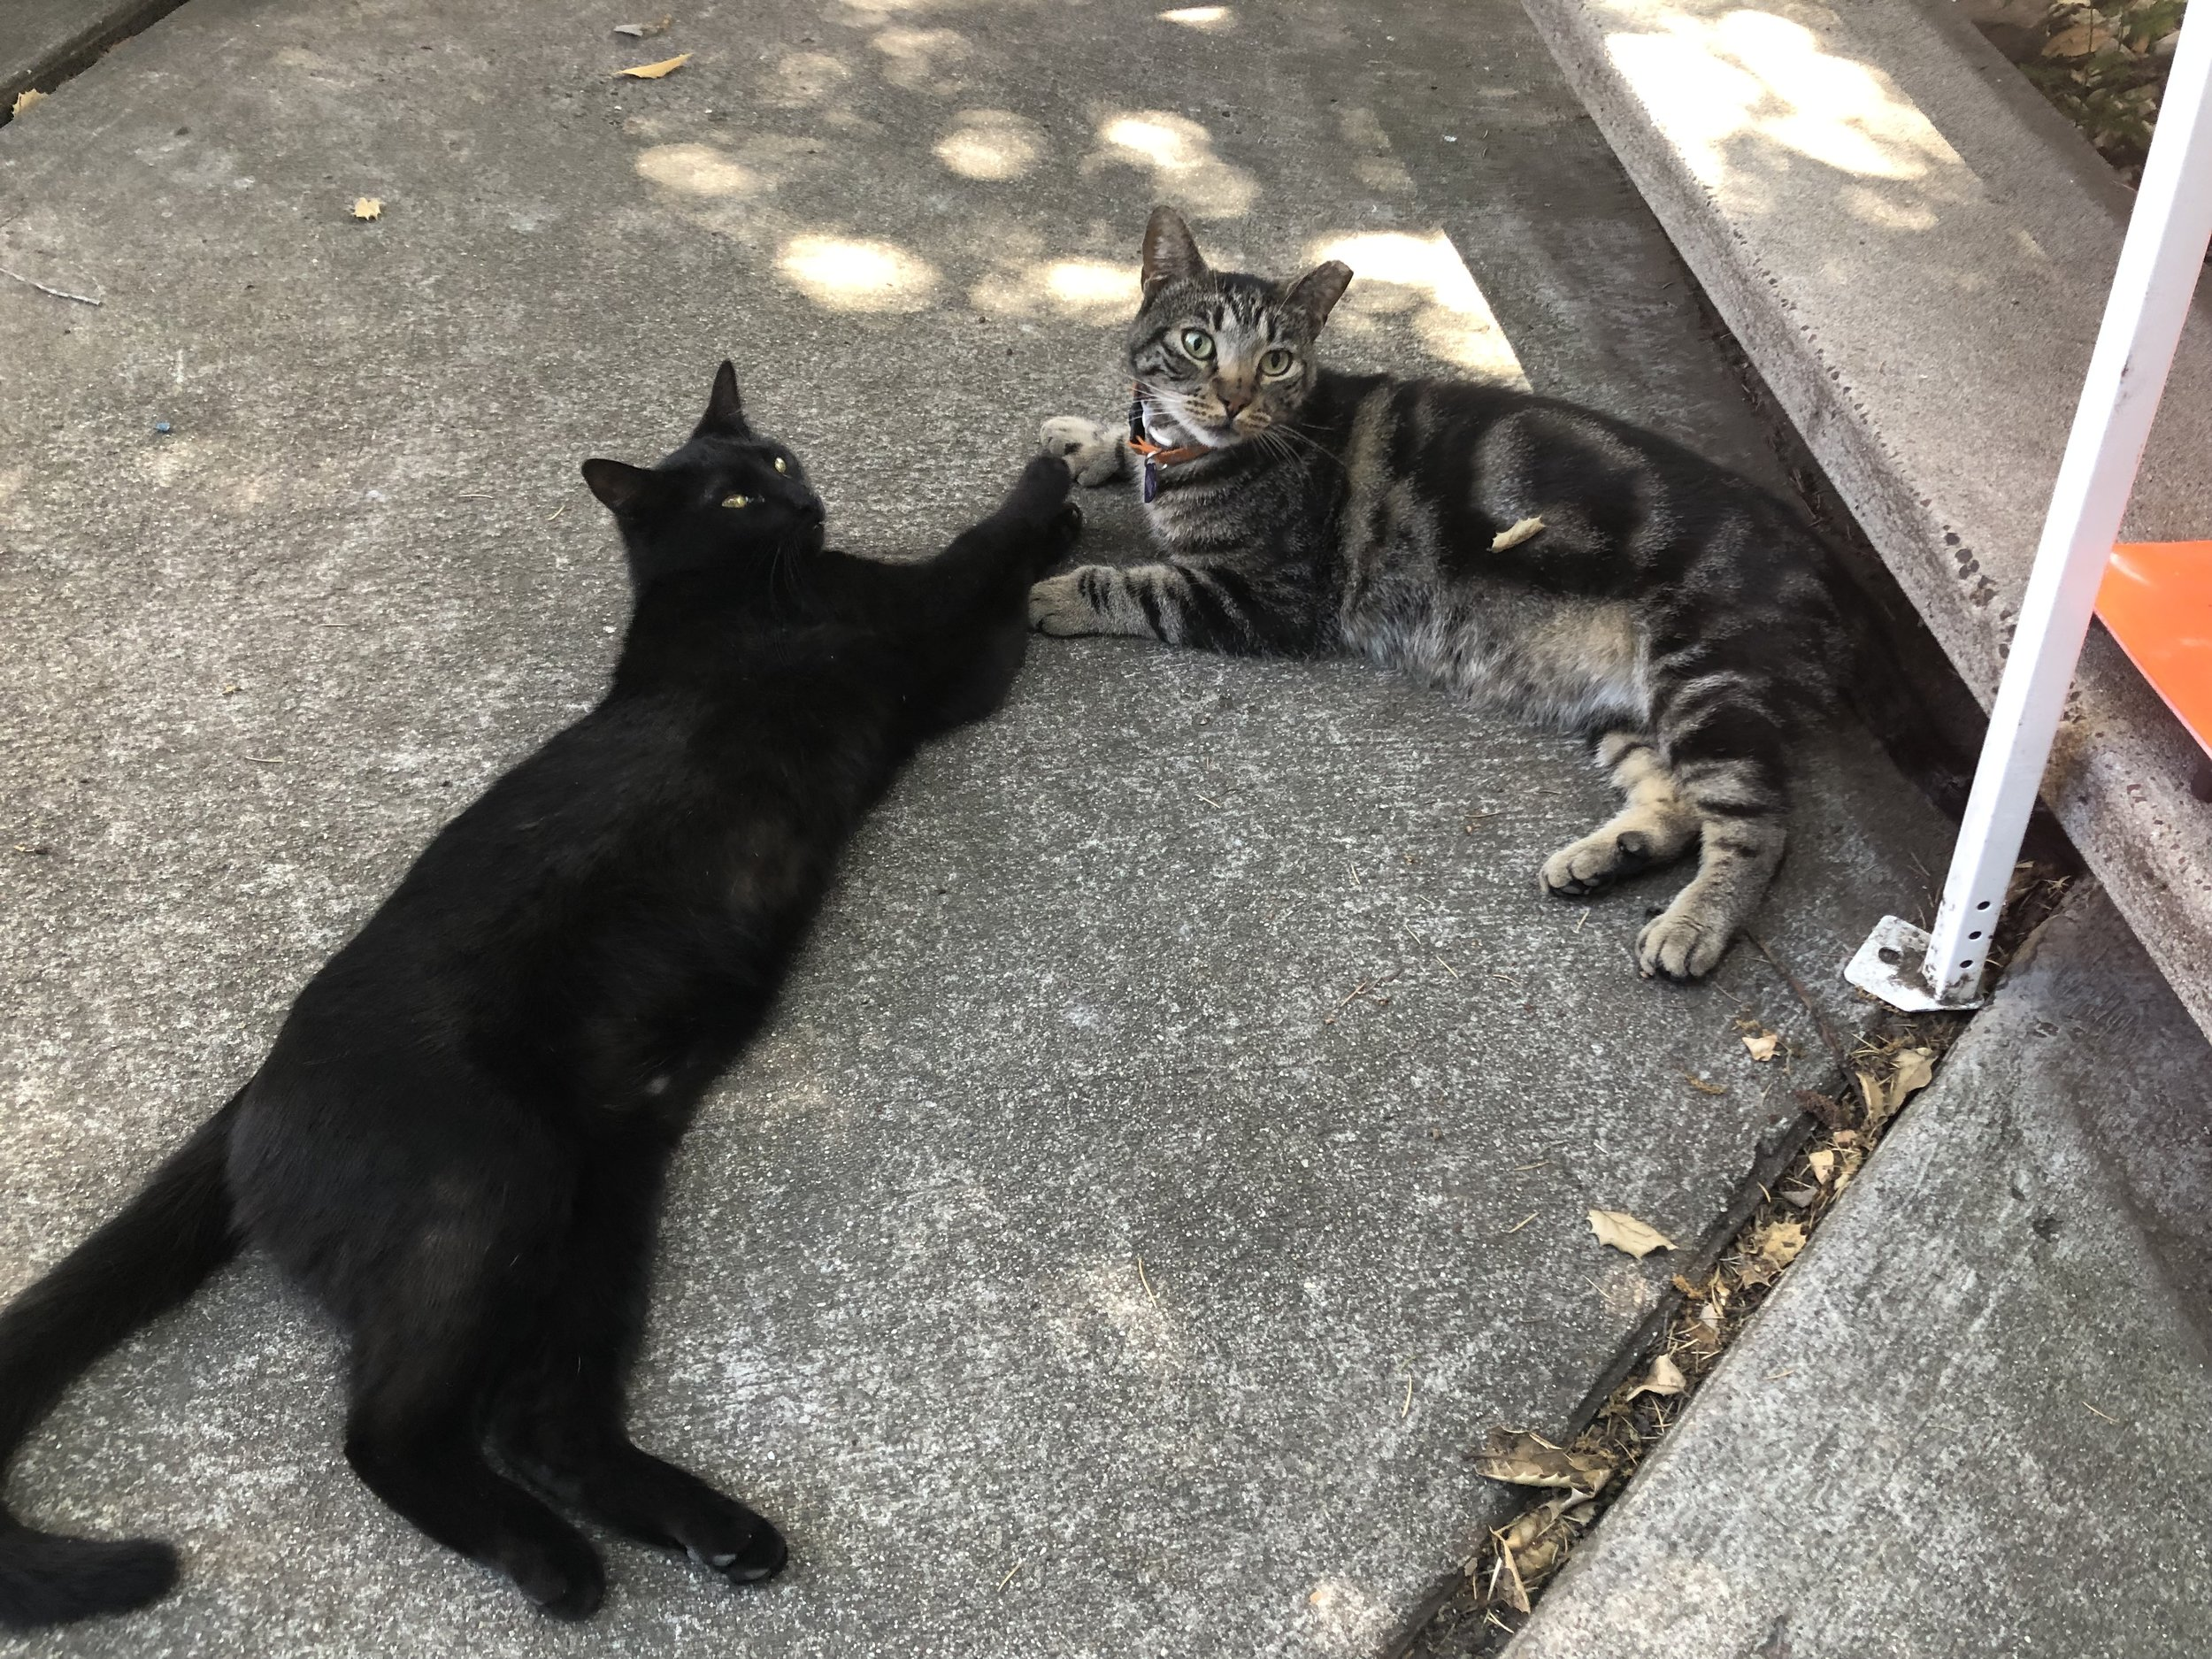 Adopting in pairs gives cats a buddy